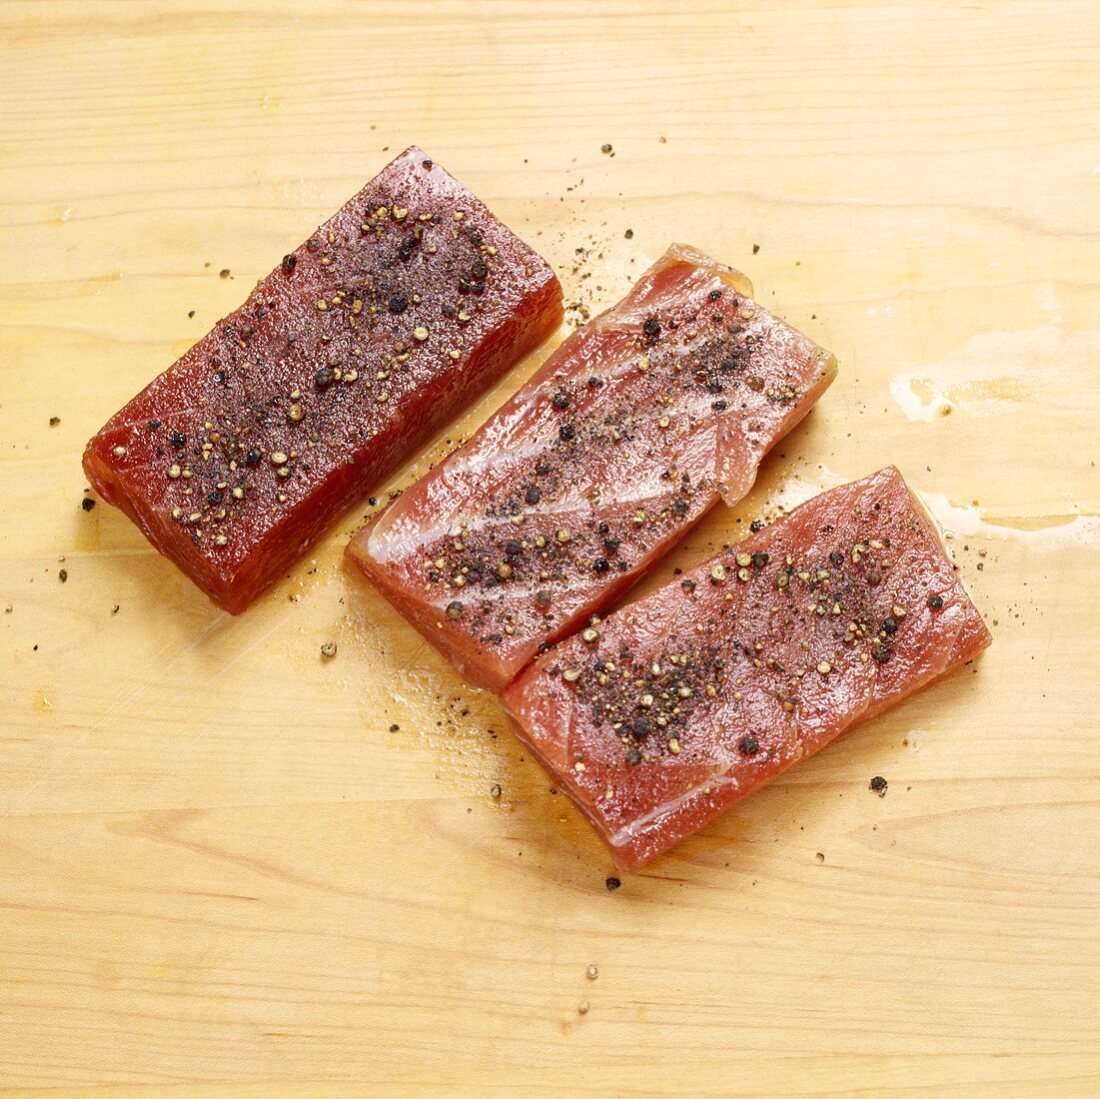 Seasoned Tuna on Butcher Block